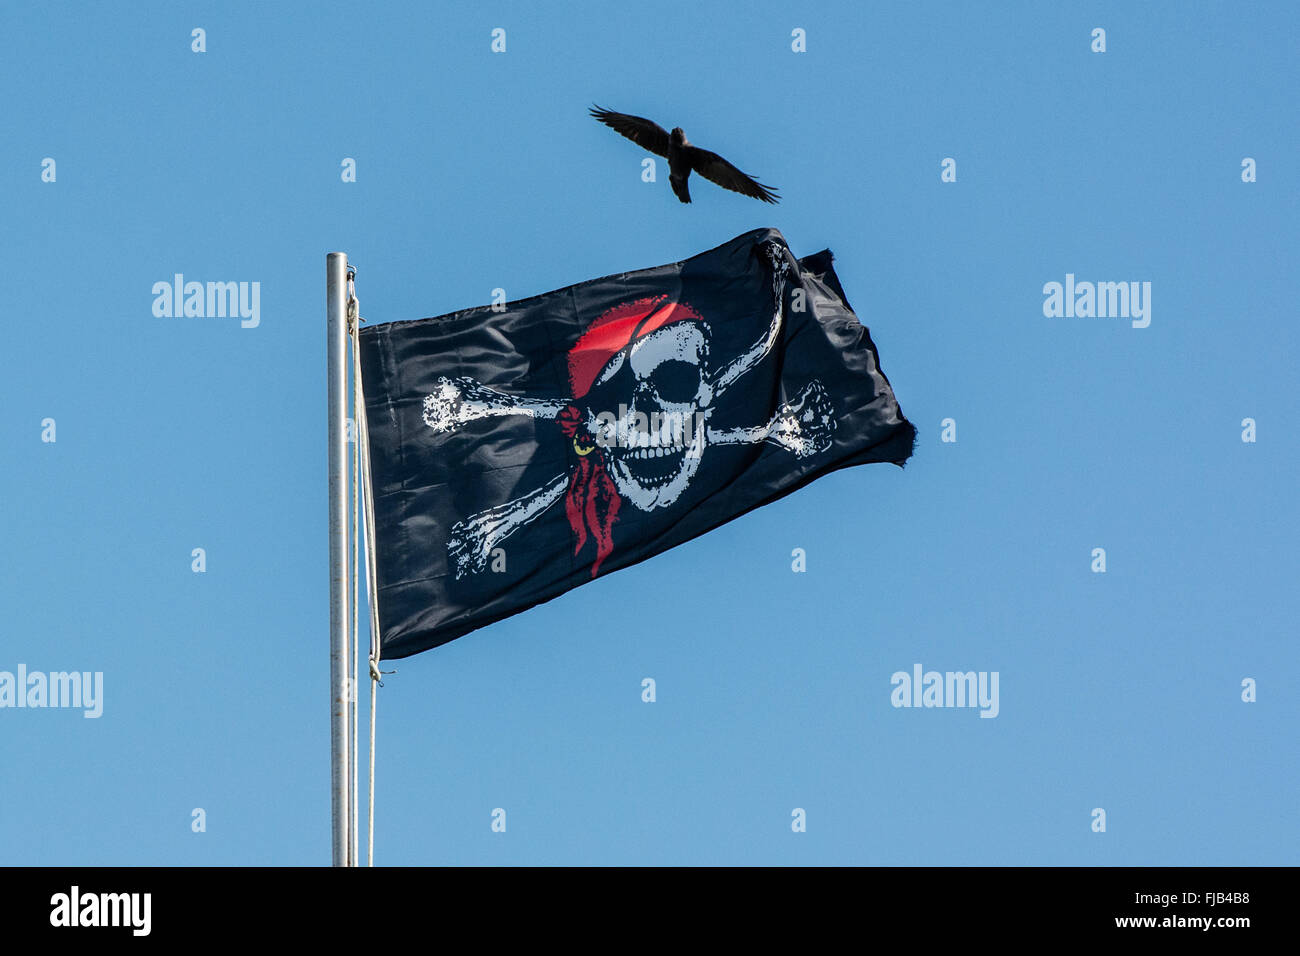 Drapeau pirate Jolly roger sur le drapeau poteau avec crow flying Photo Stock